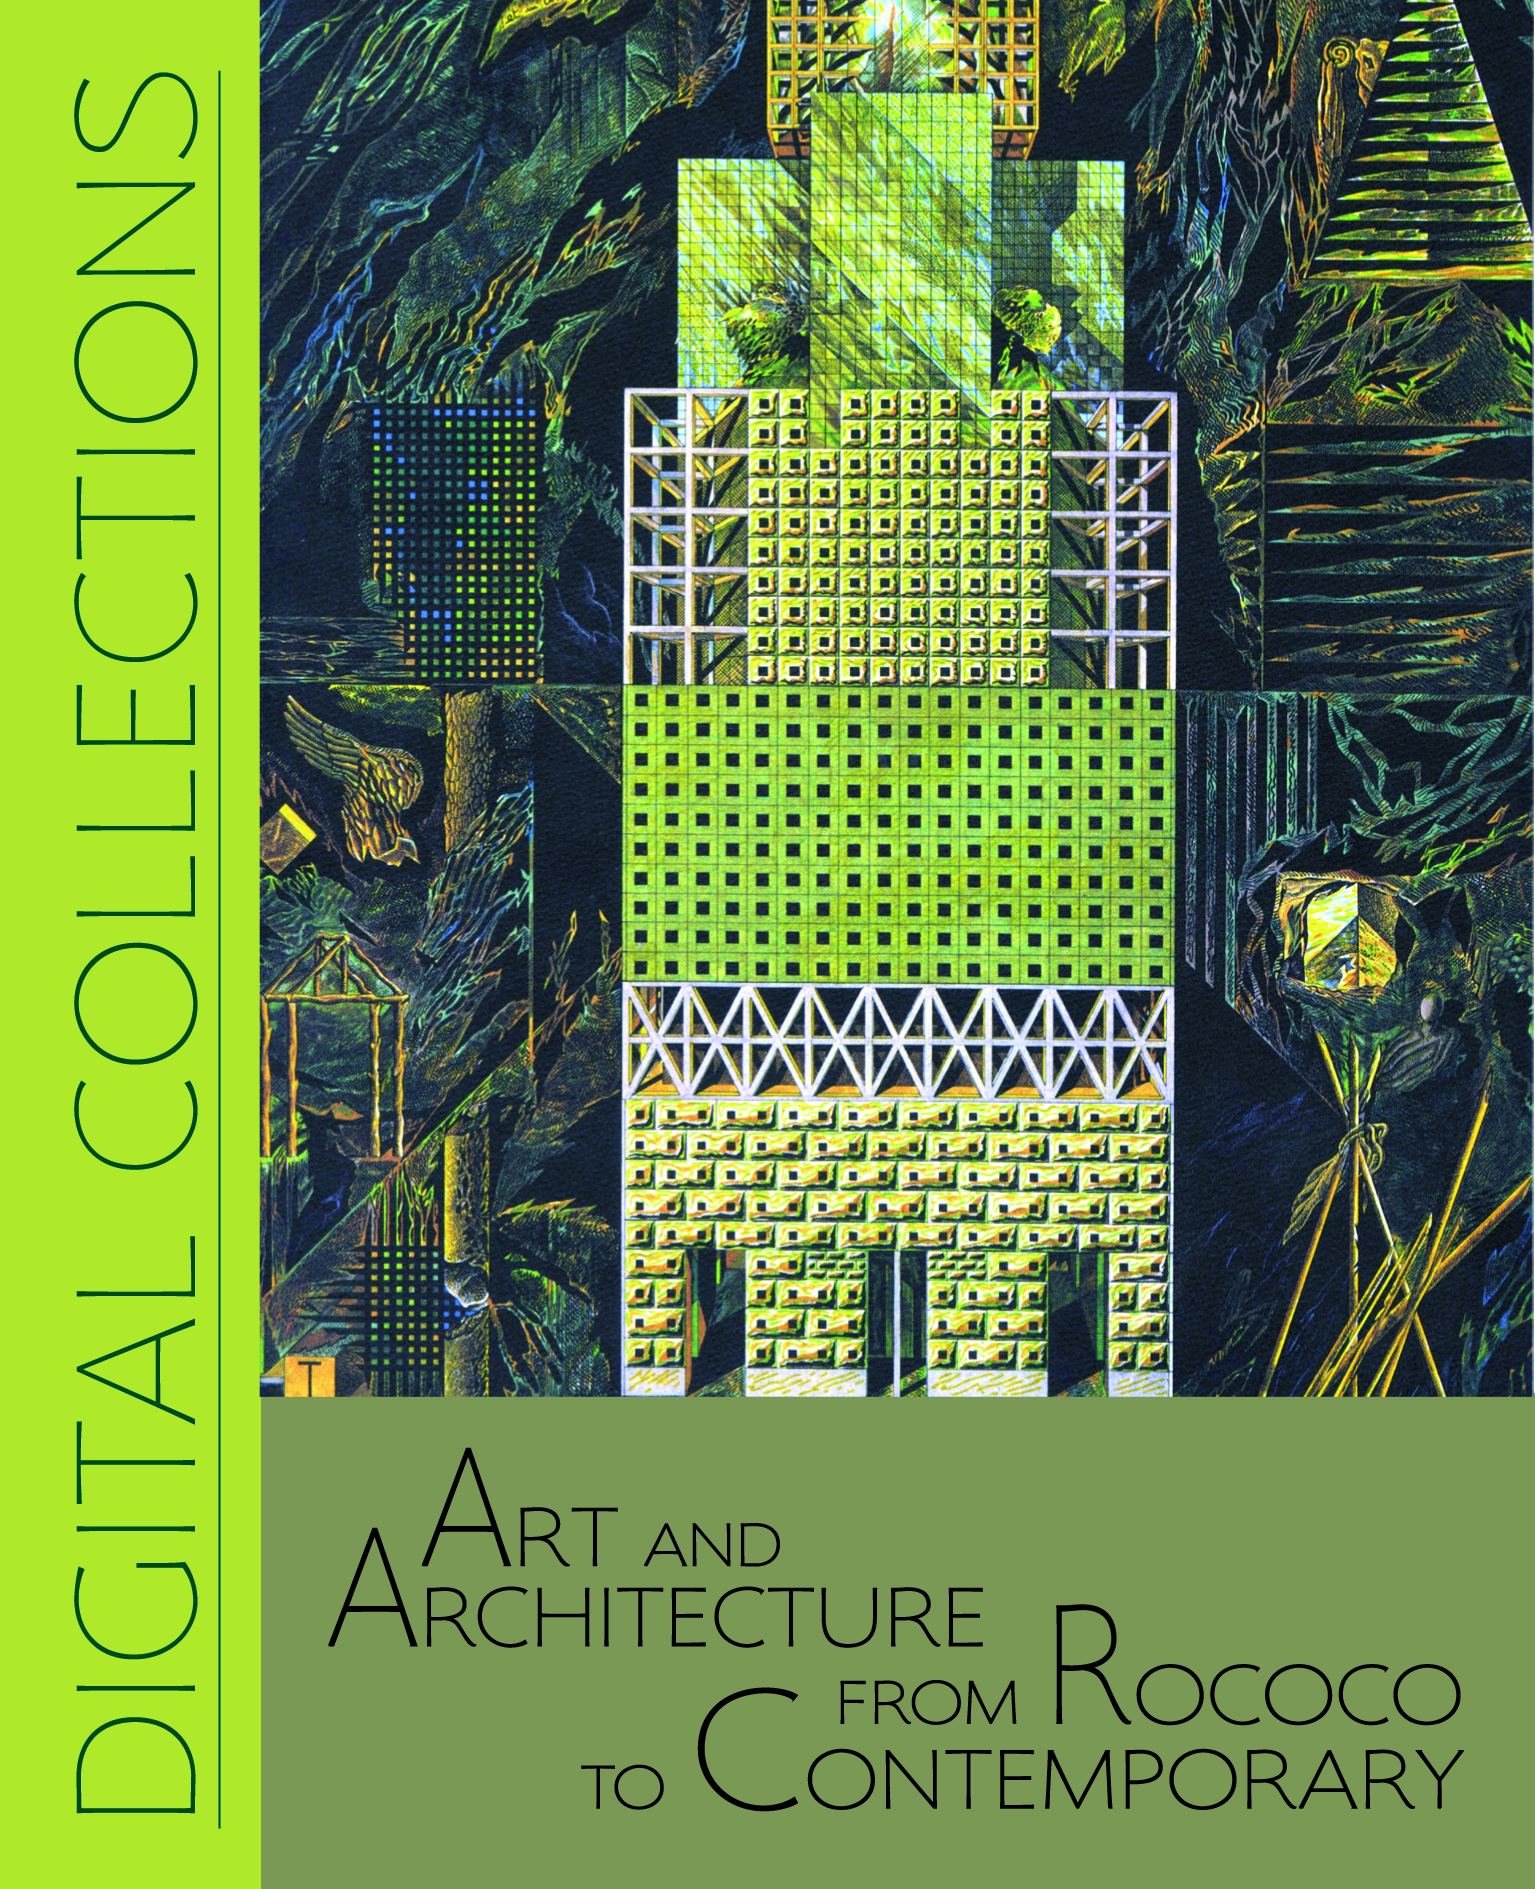 Art and Architecture from Rococo to Contemporary